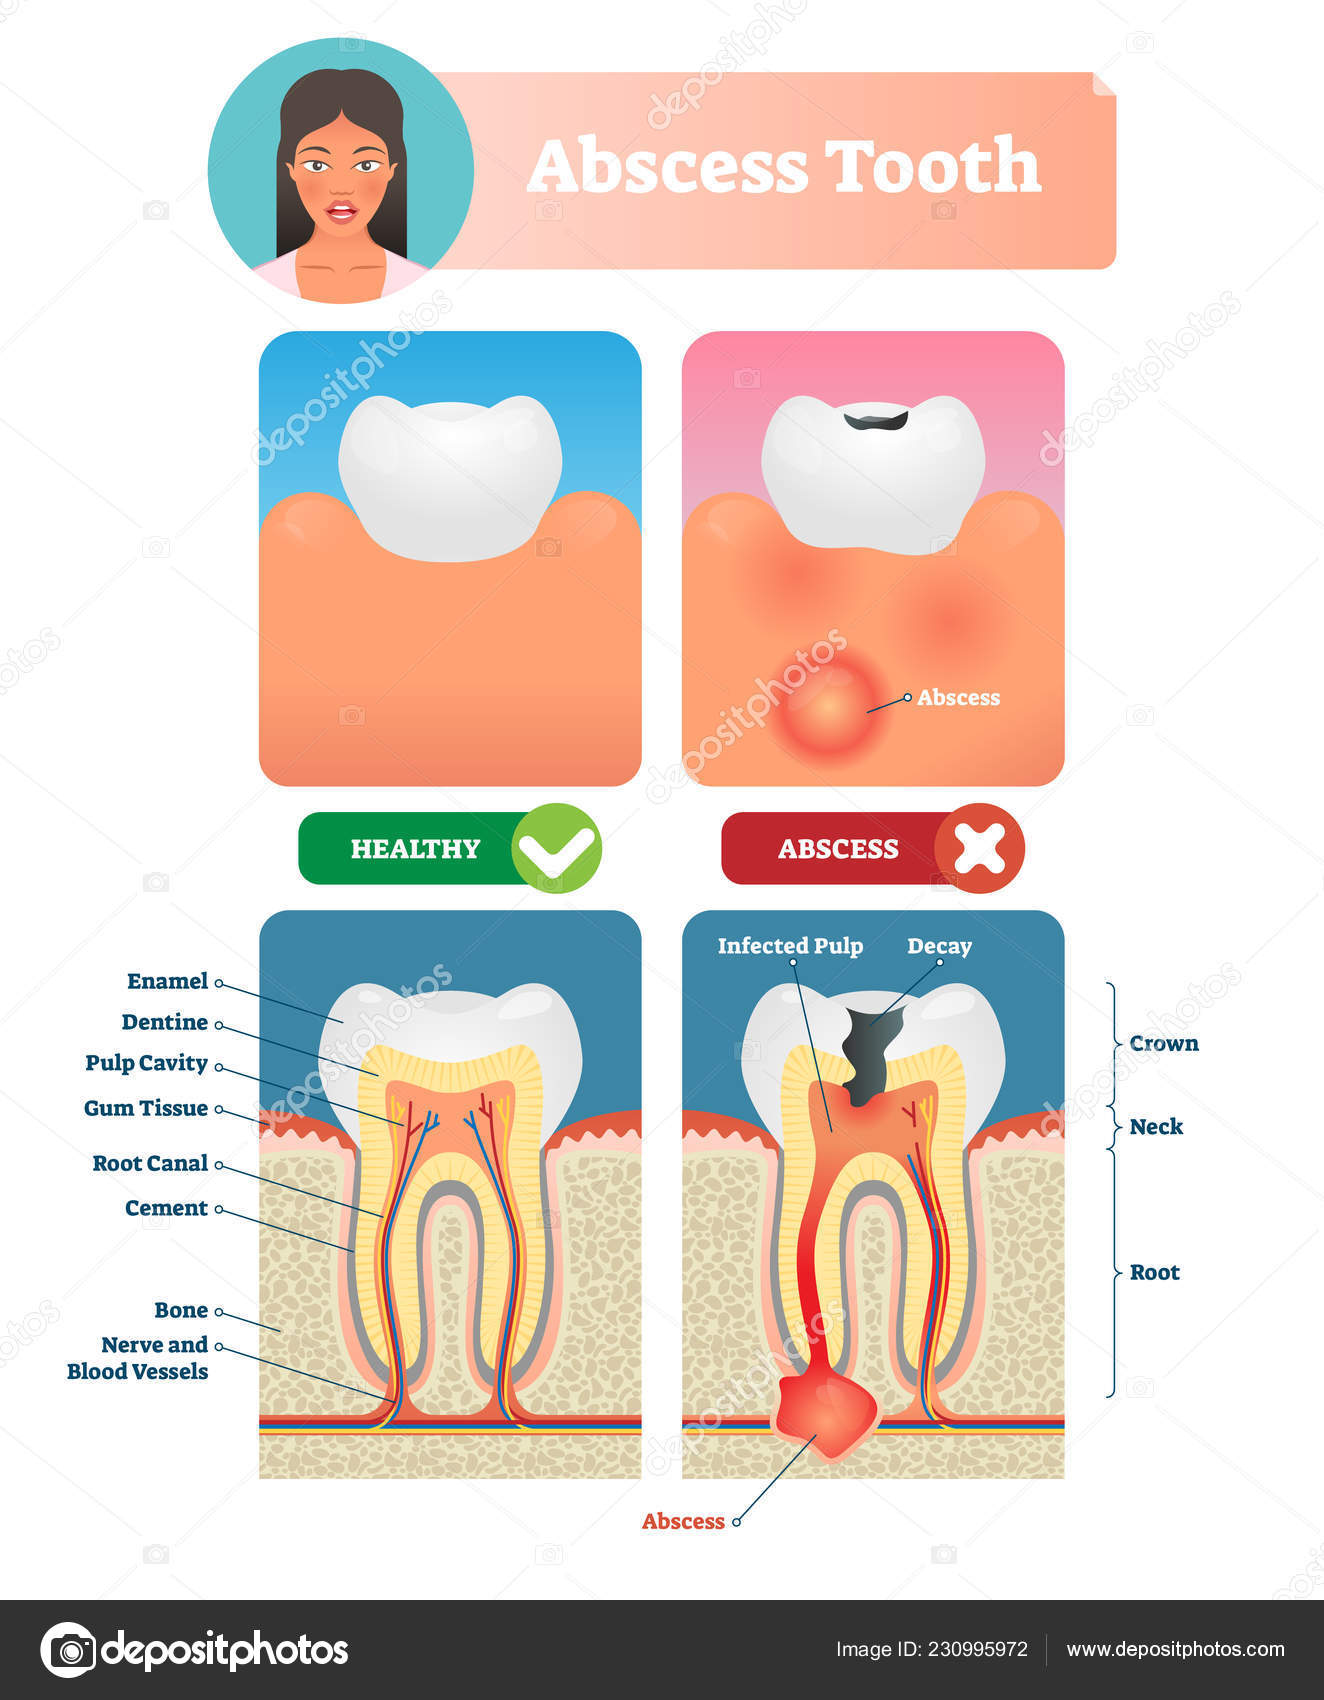 abscess tooth vector illustration  labeled medical diagram with structure   compared isolated infected root canal with healthy  personal oral mouth  hygiene